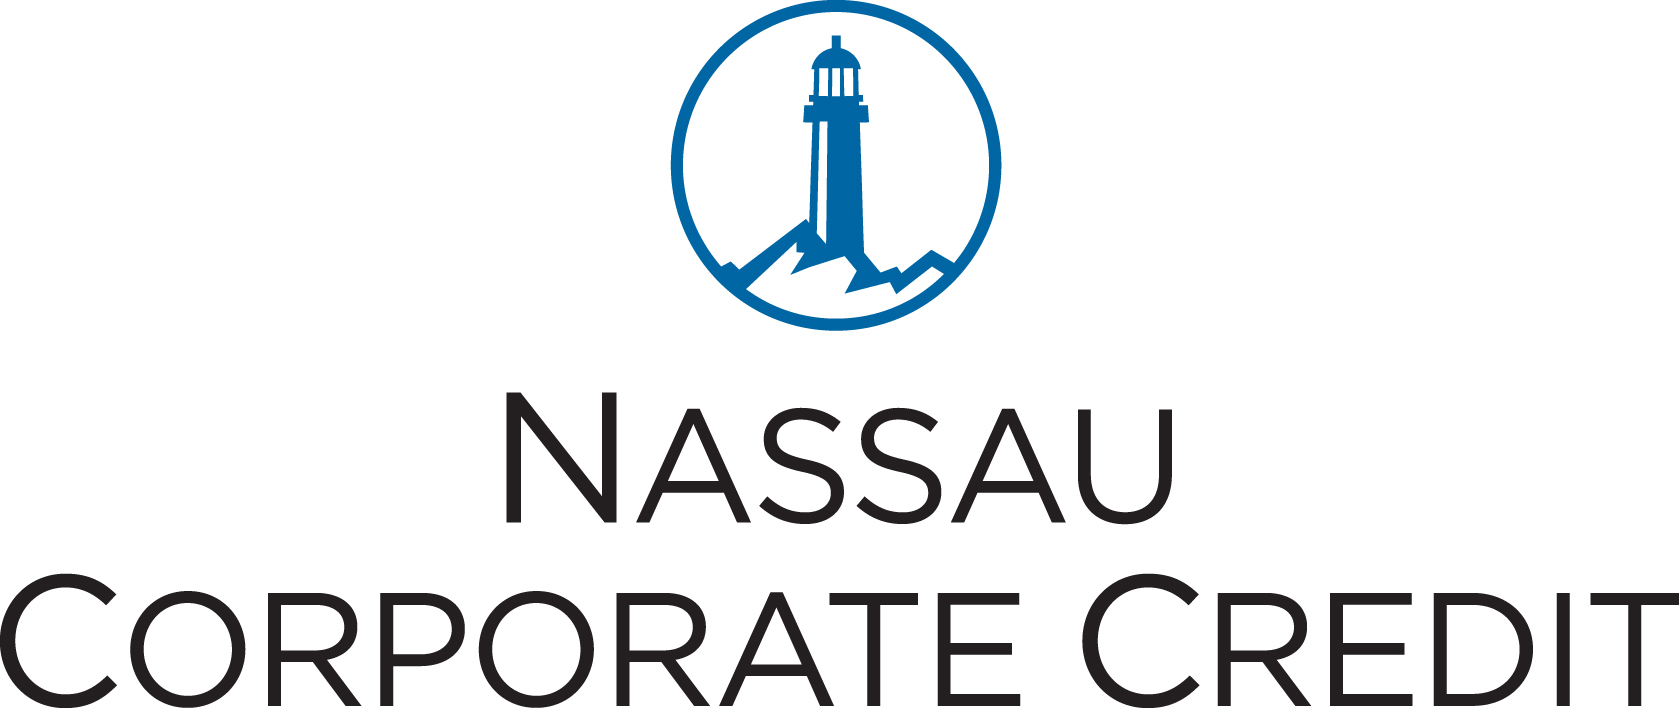 "Nassau Corporate Credit wins ""Best New US CLO"" at 2020 Creditflux Manager Awards"